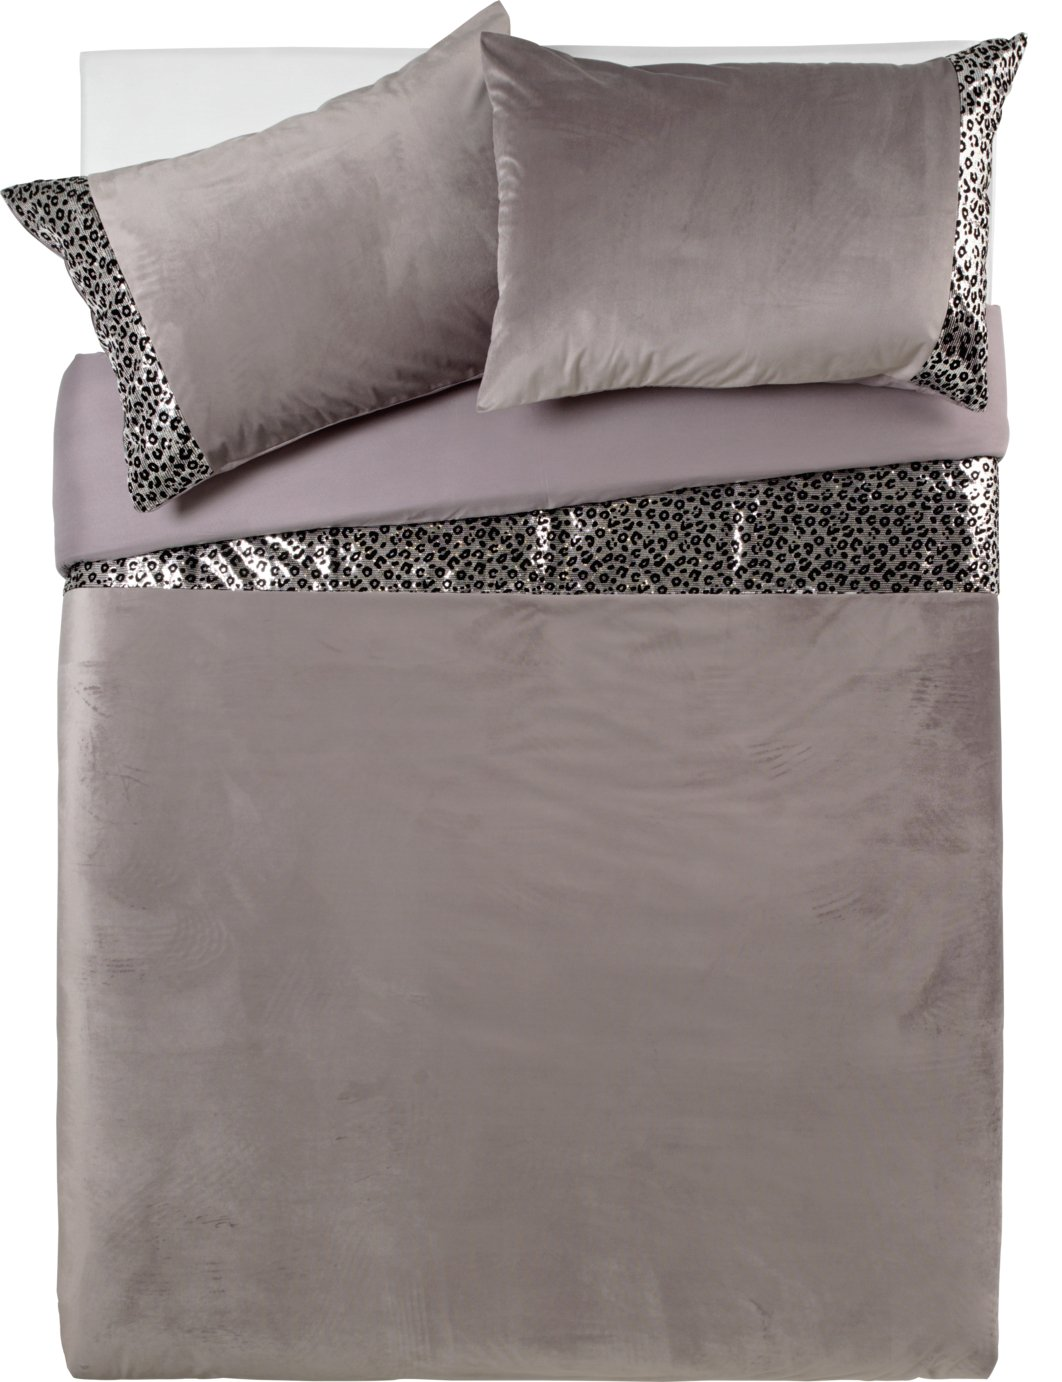 Argos Home Sequin Leopard Print Bedding Set - Superking